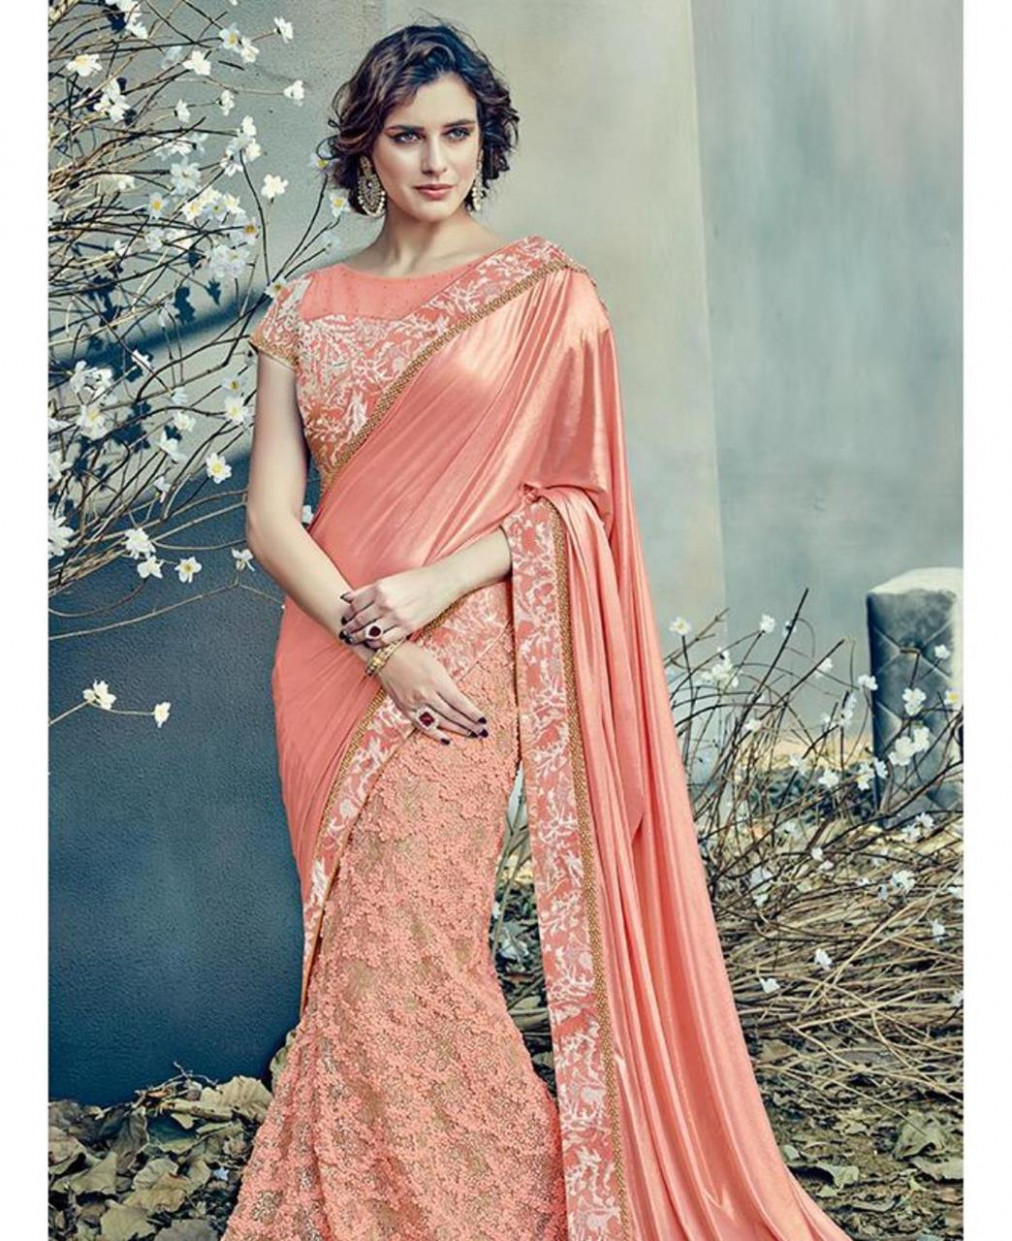 Buy Pretty Peach Net Saree [133725] at 260.90 د.إ.‏